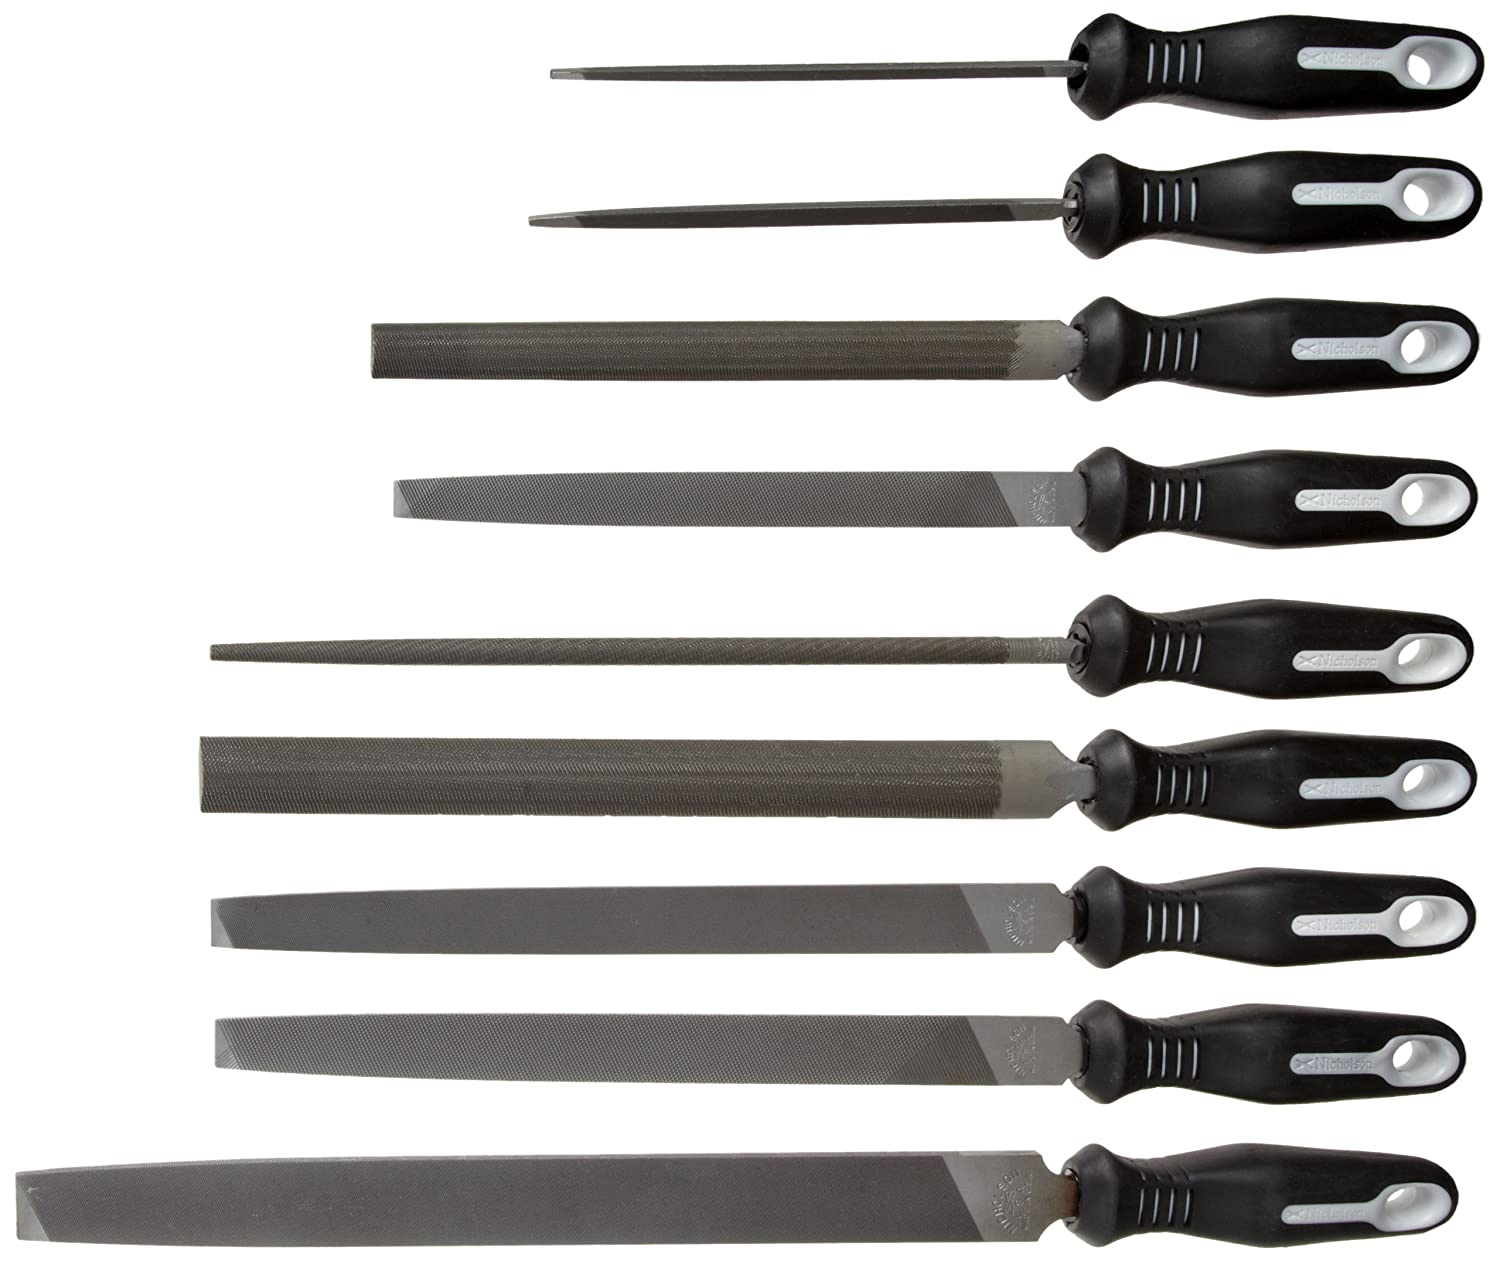 Nicholson 9 Piece Hand File Set with Ergonomic Handles American Pattern